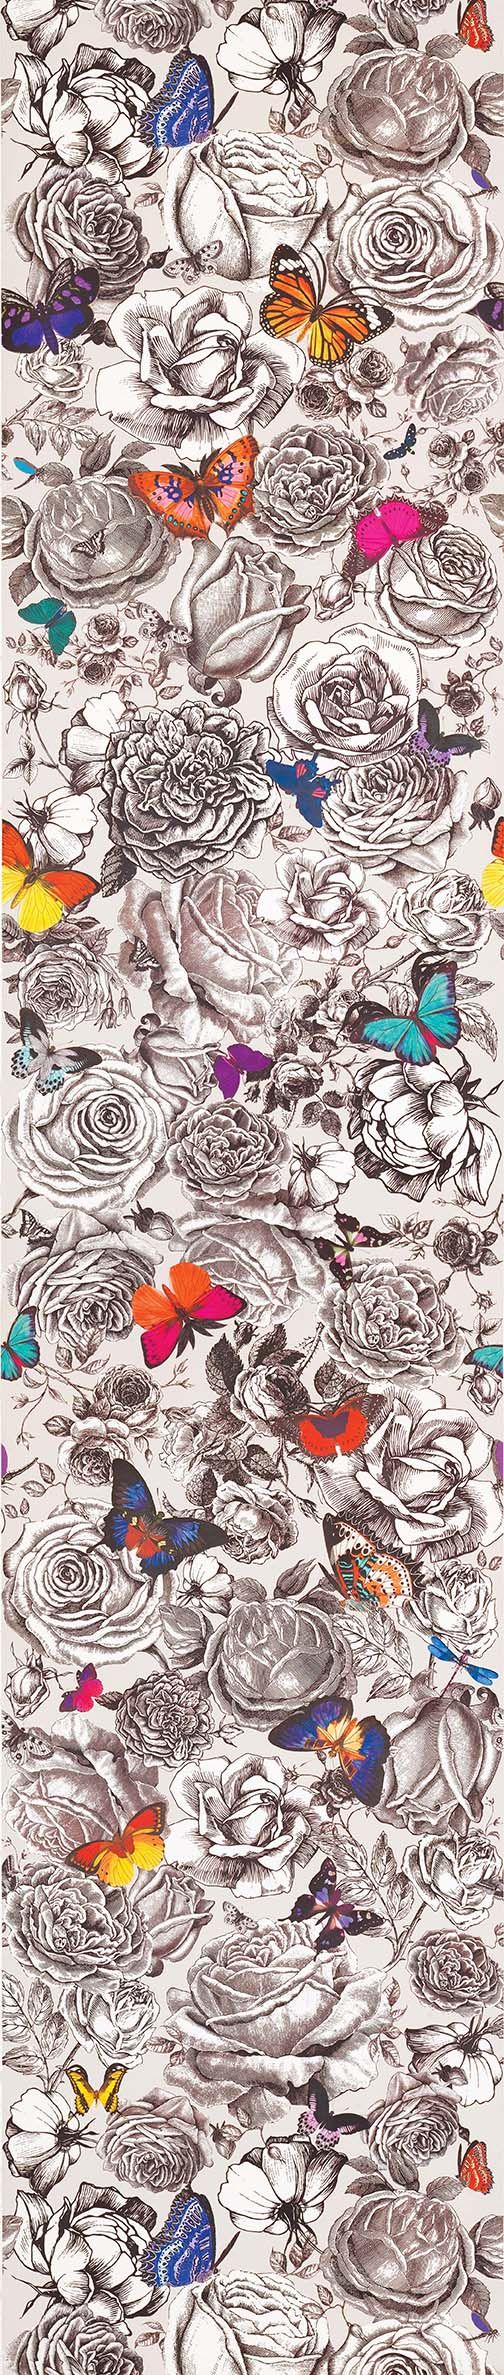 16 best Zeichnen / Drawing images on Pinterest | Draw, Drawing and ...